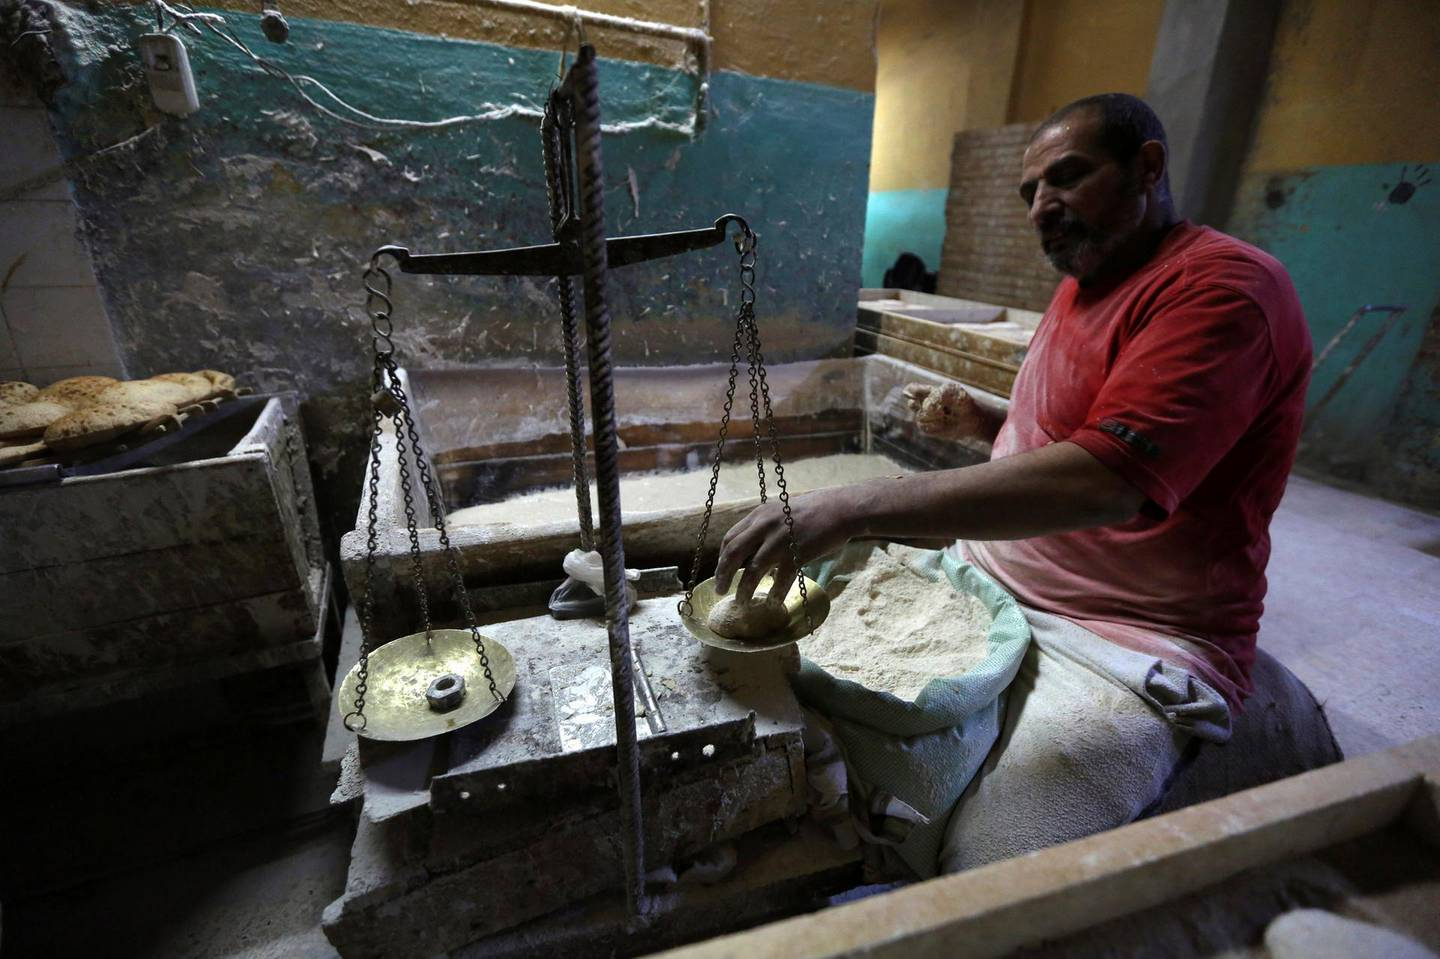 FILE PHOTO: A worker weighs dough to be baked into bread at a bakery in Cairo, January 8, 2015. REUTERS /Mohamed Abd El Ghany/File Photo